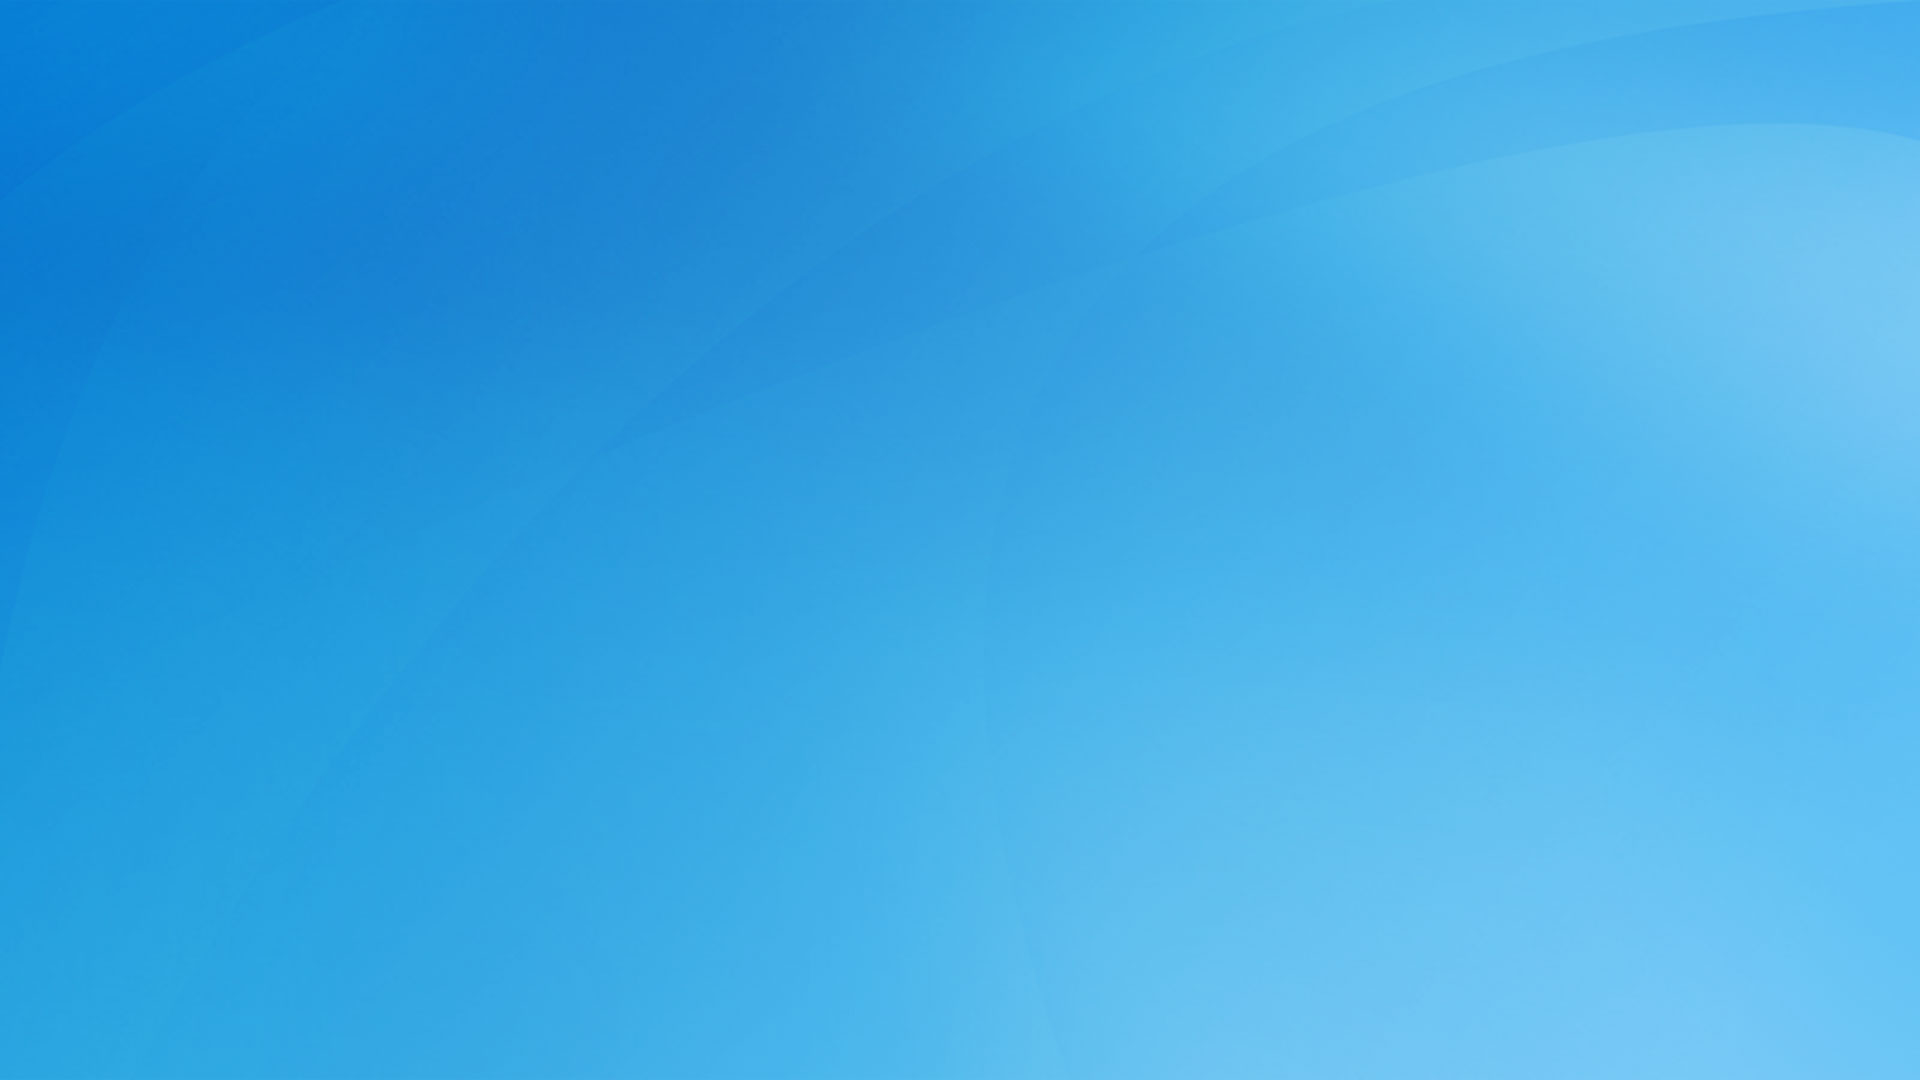 plain-blue-background-wallpaper-3